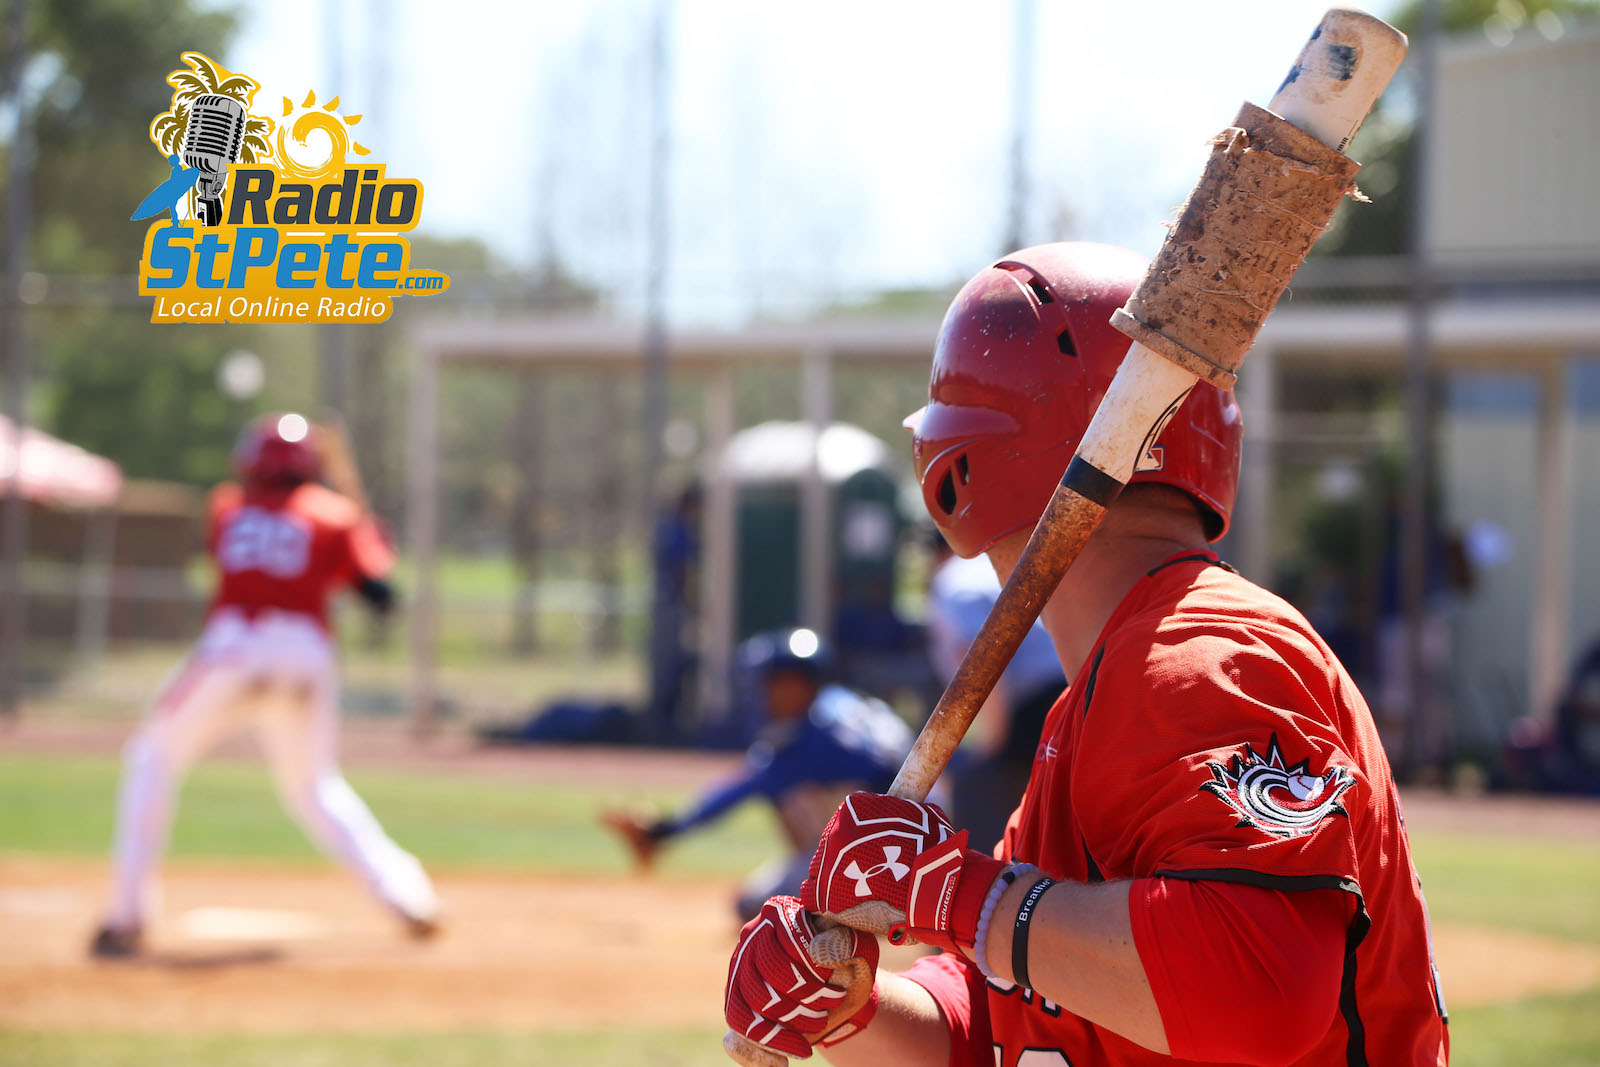 Listen to Junior National Team Spring Training!